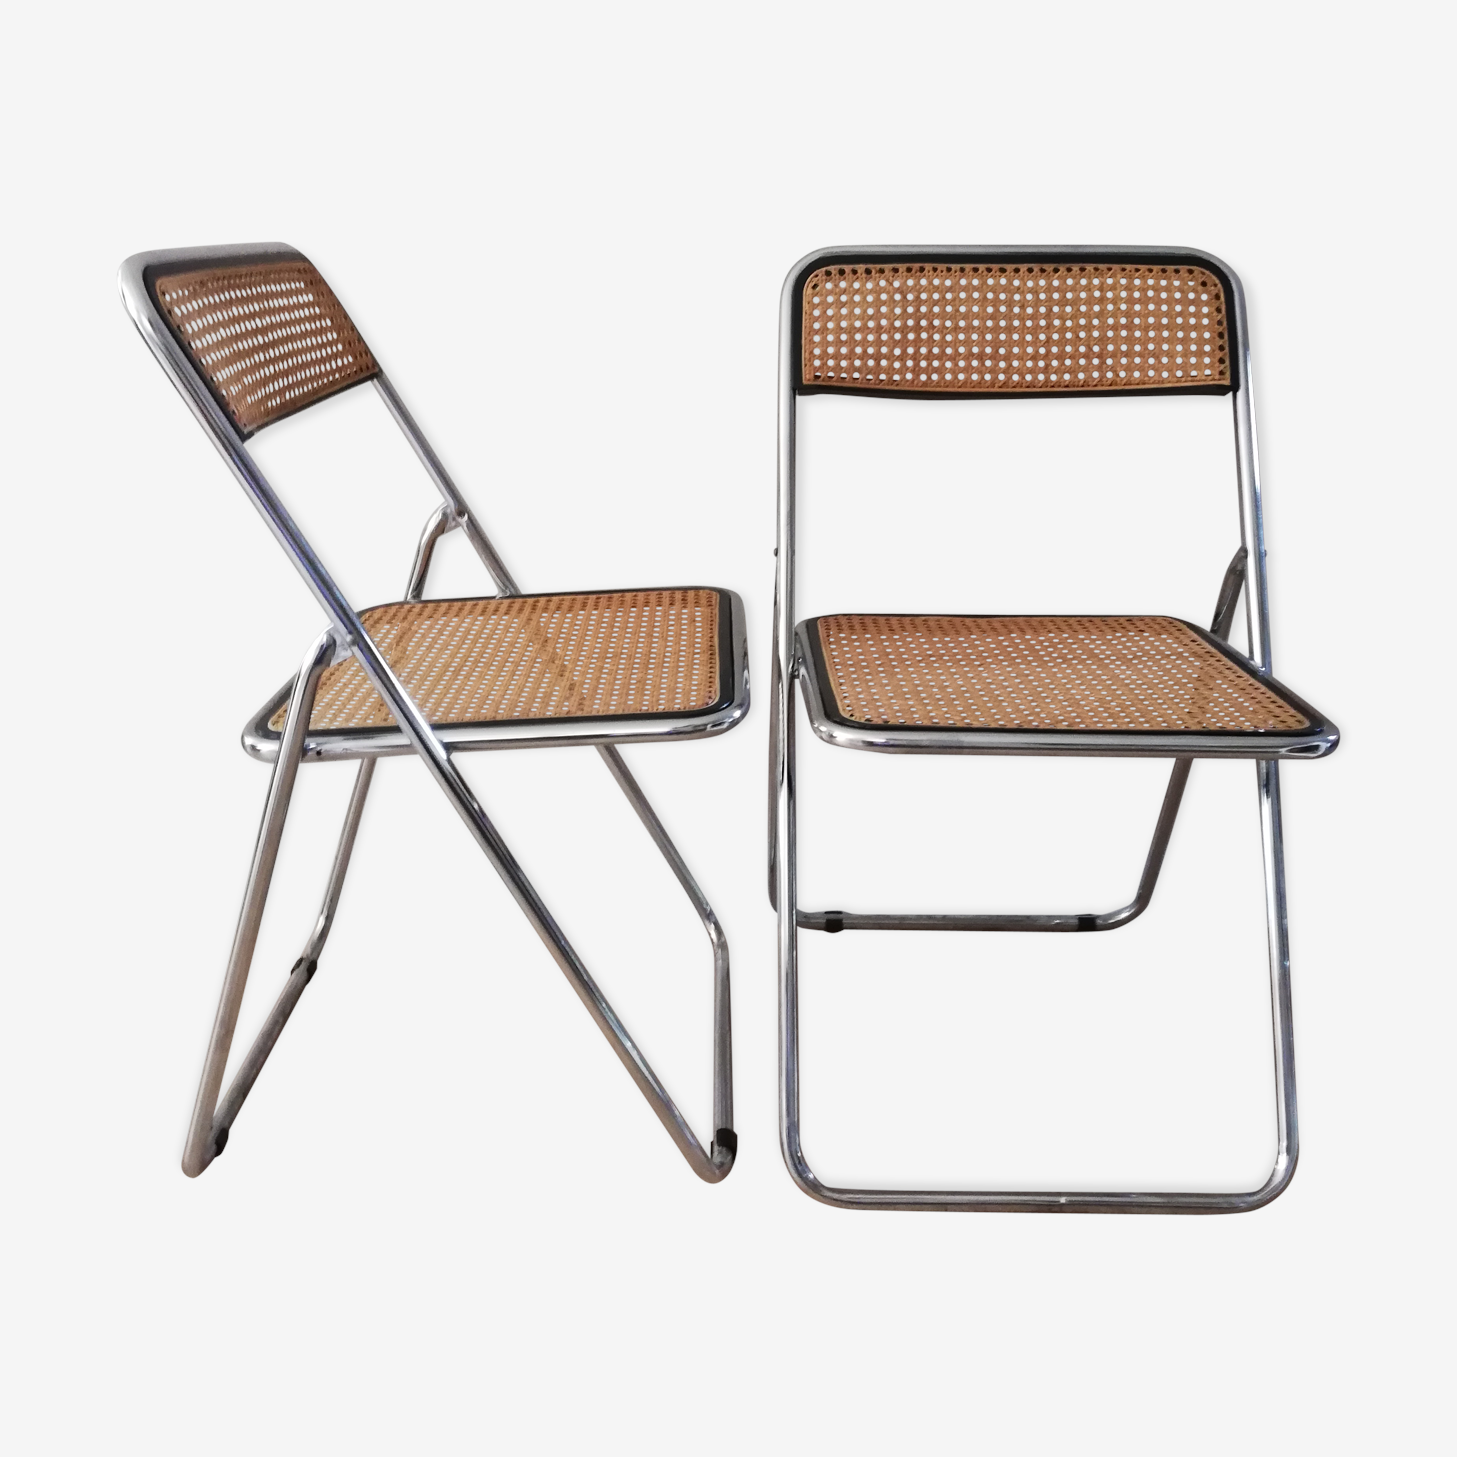 Pair of folding chairs in caning and chromed tube